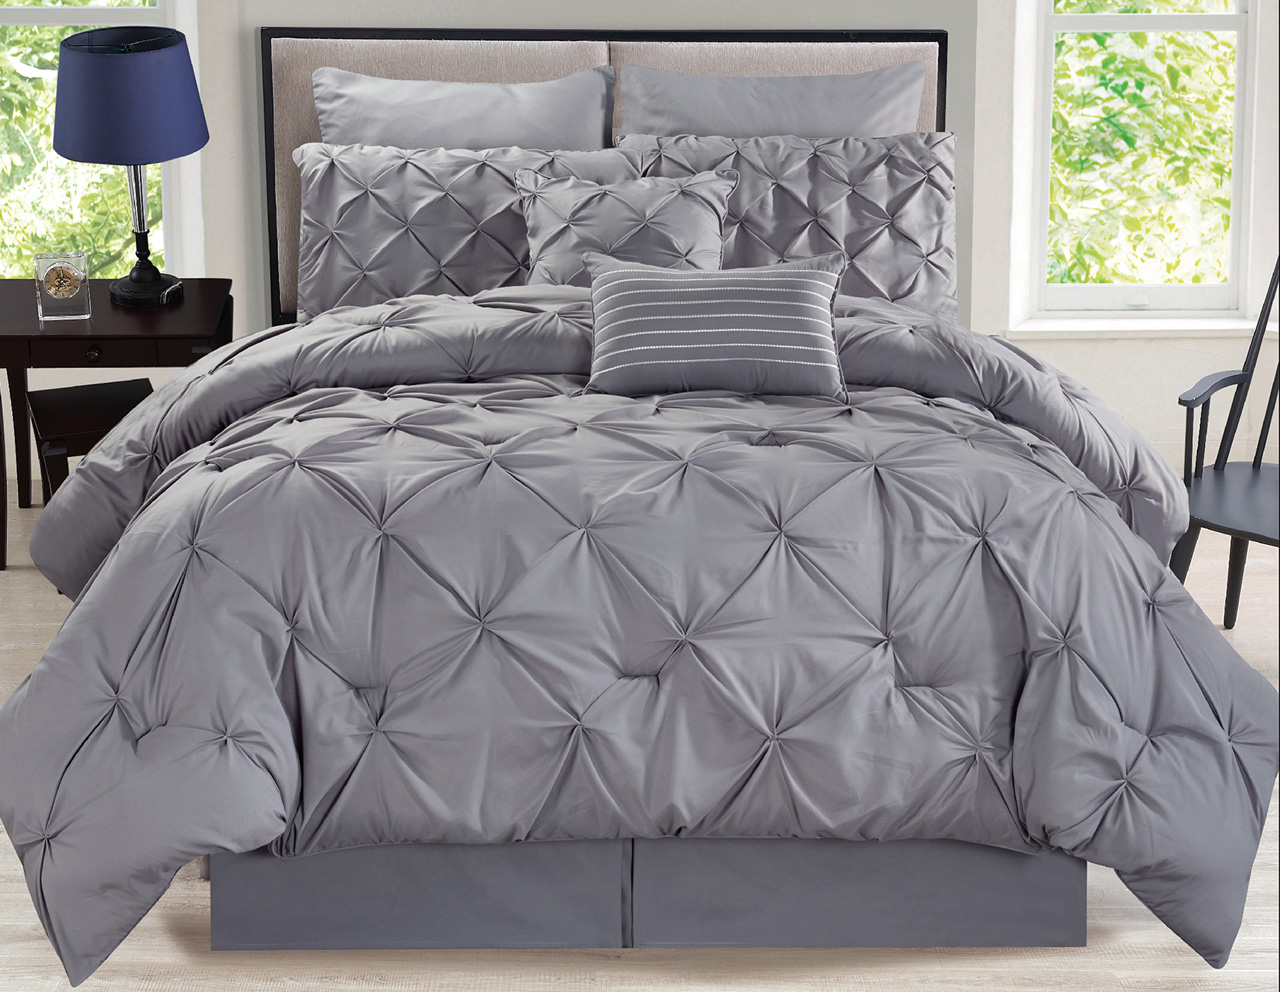 Gray Madeira Comforter Set : Piece rochelle pinched pleat gray comforter set